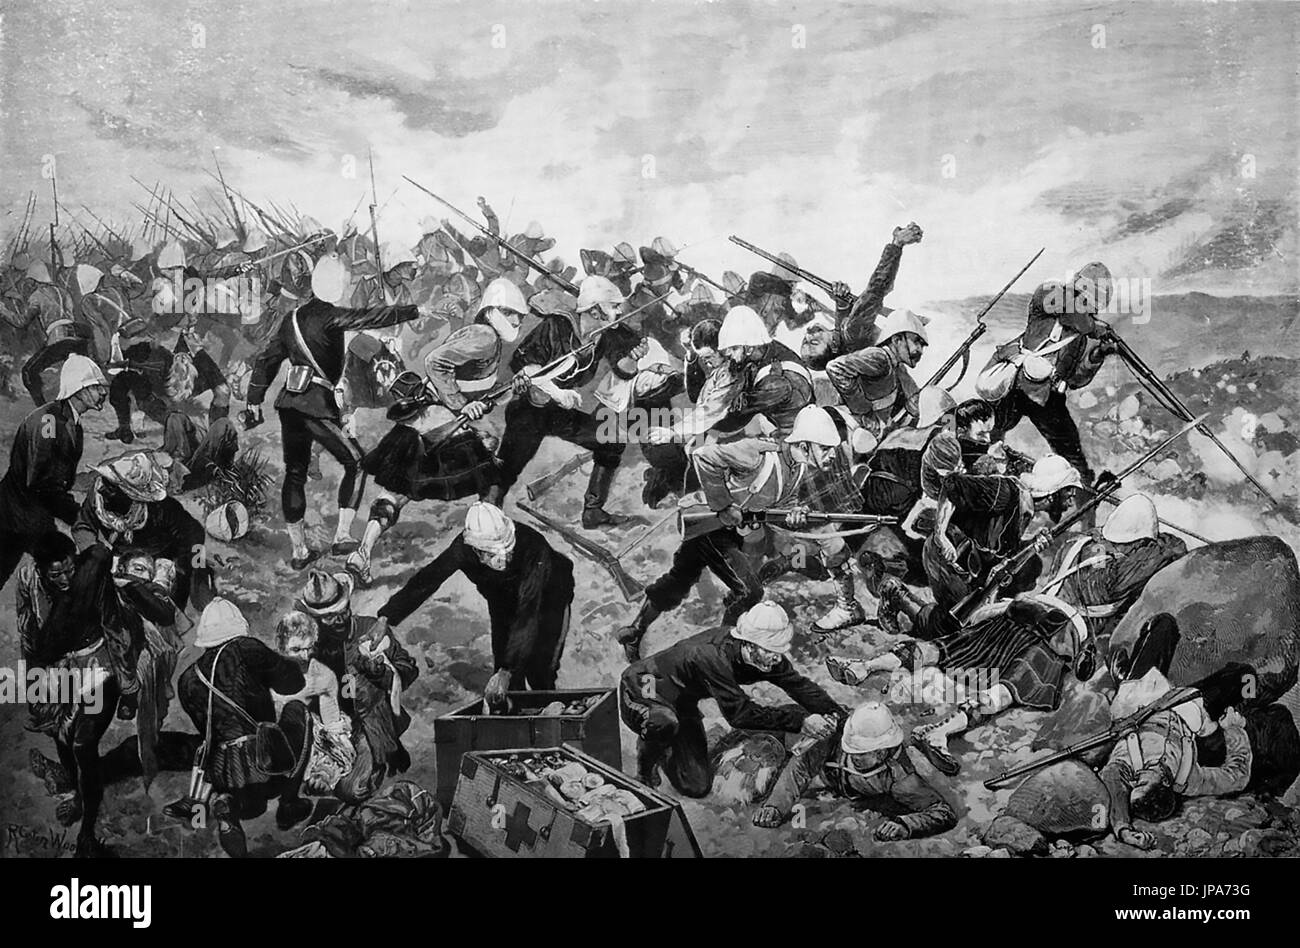 BATTLE OF MAJUBA HILL, 27 February 1881. Final battle of the First Boer War.  British troops under Major-General George Colley. Engraving from Illustrated London News. - Stock Image